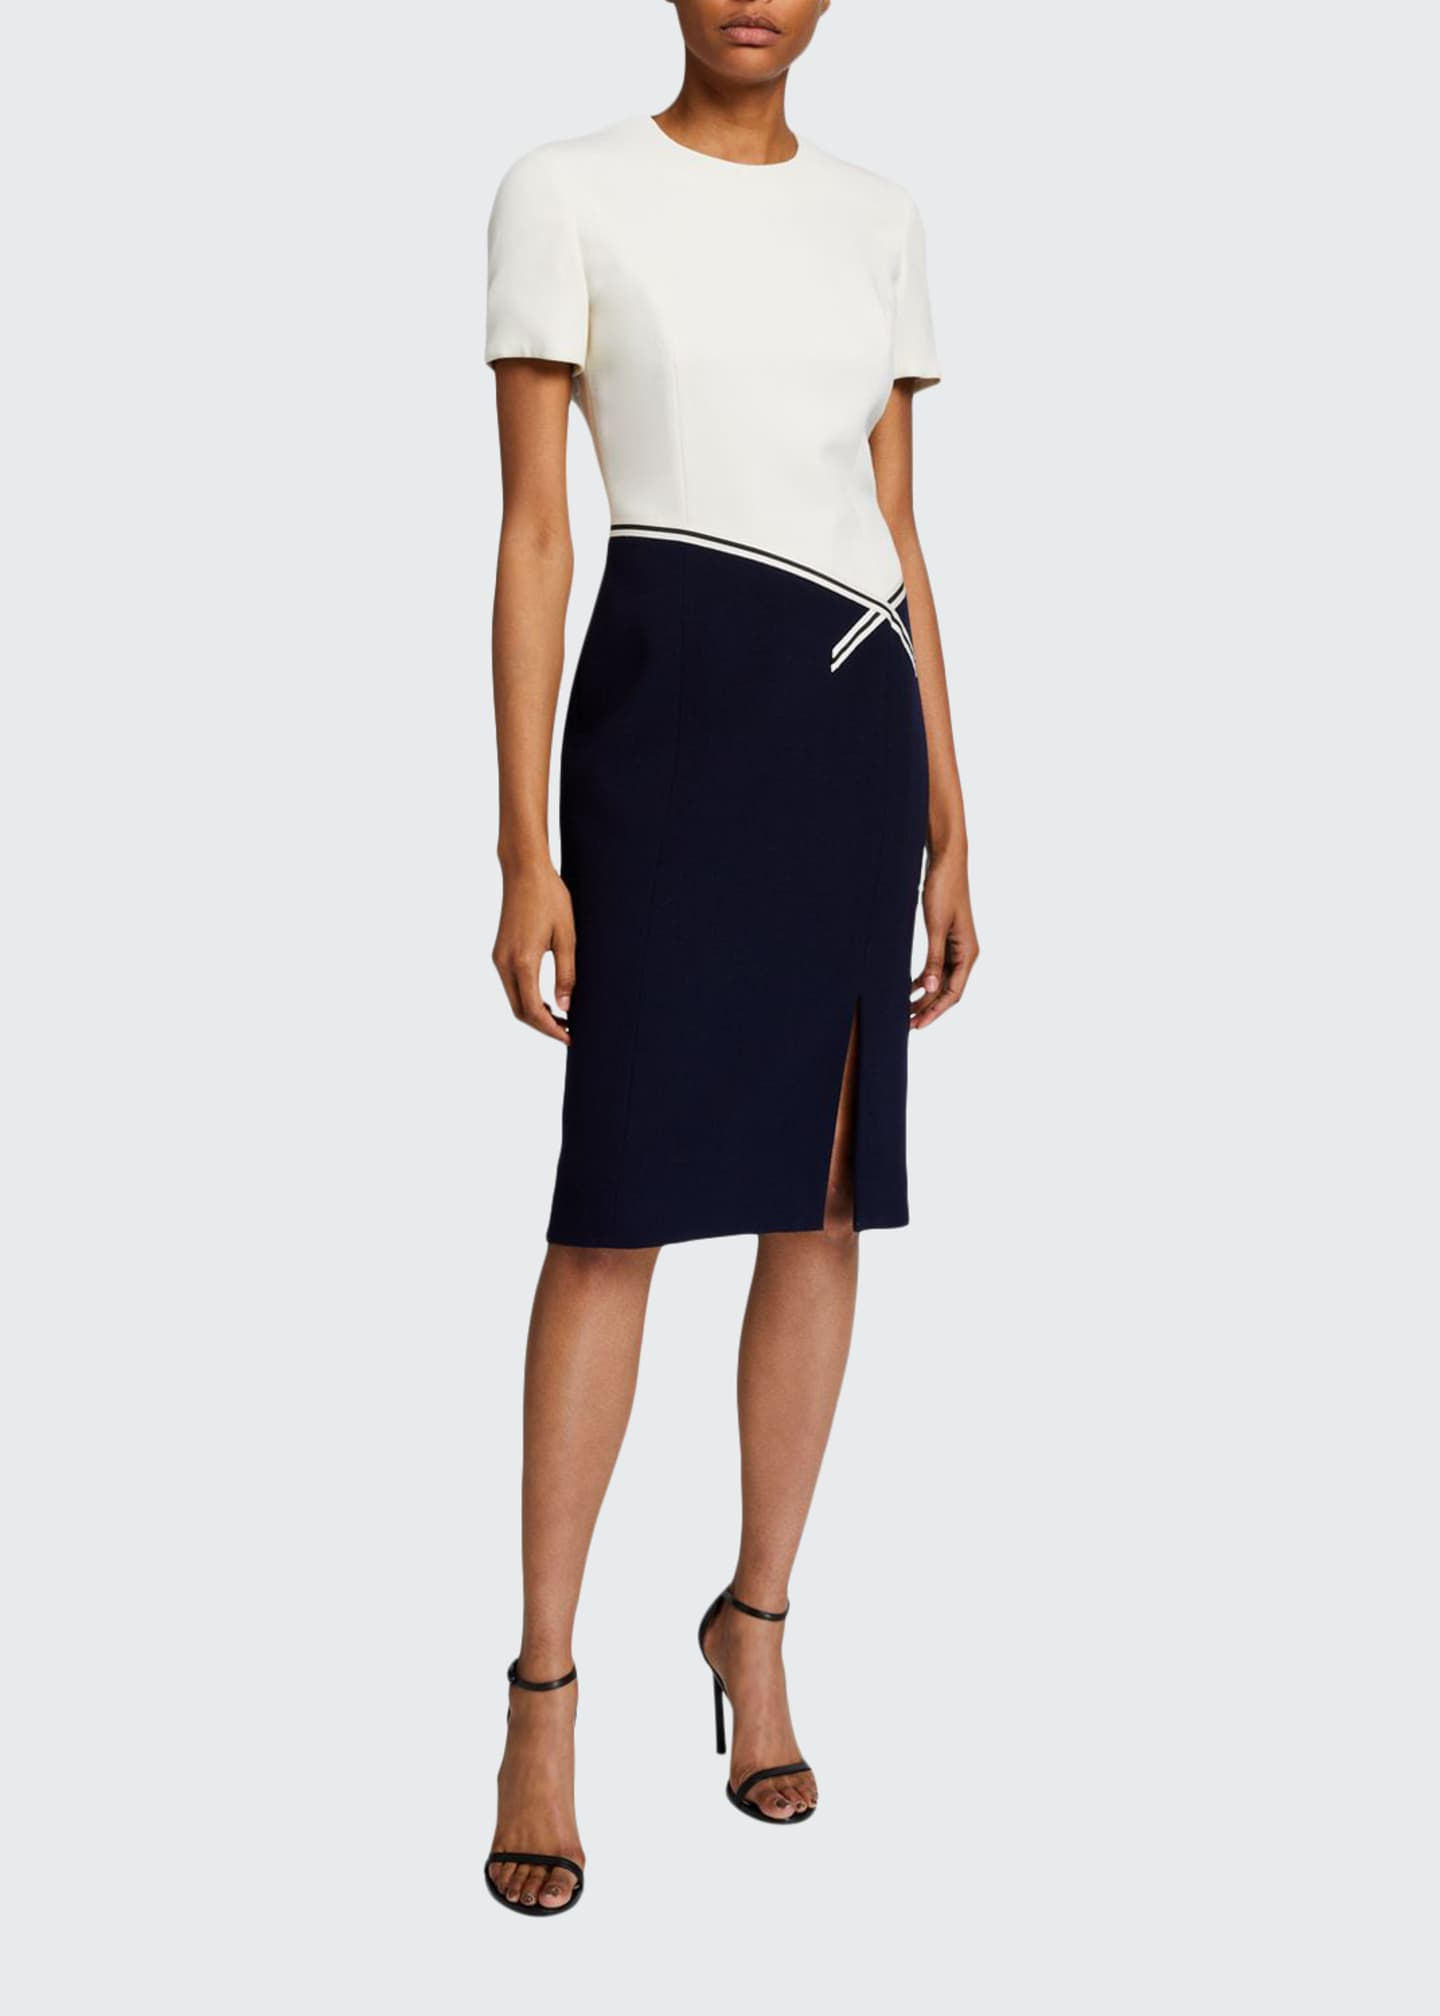 Atelier Caito for Herve Pierre Colorblocked Bodycon Dress